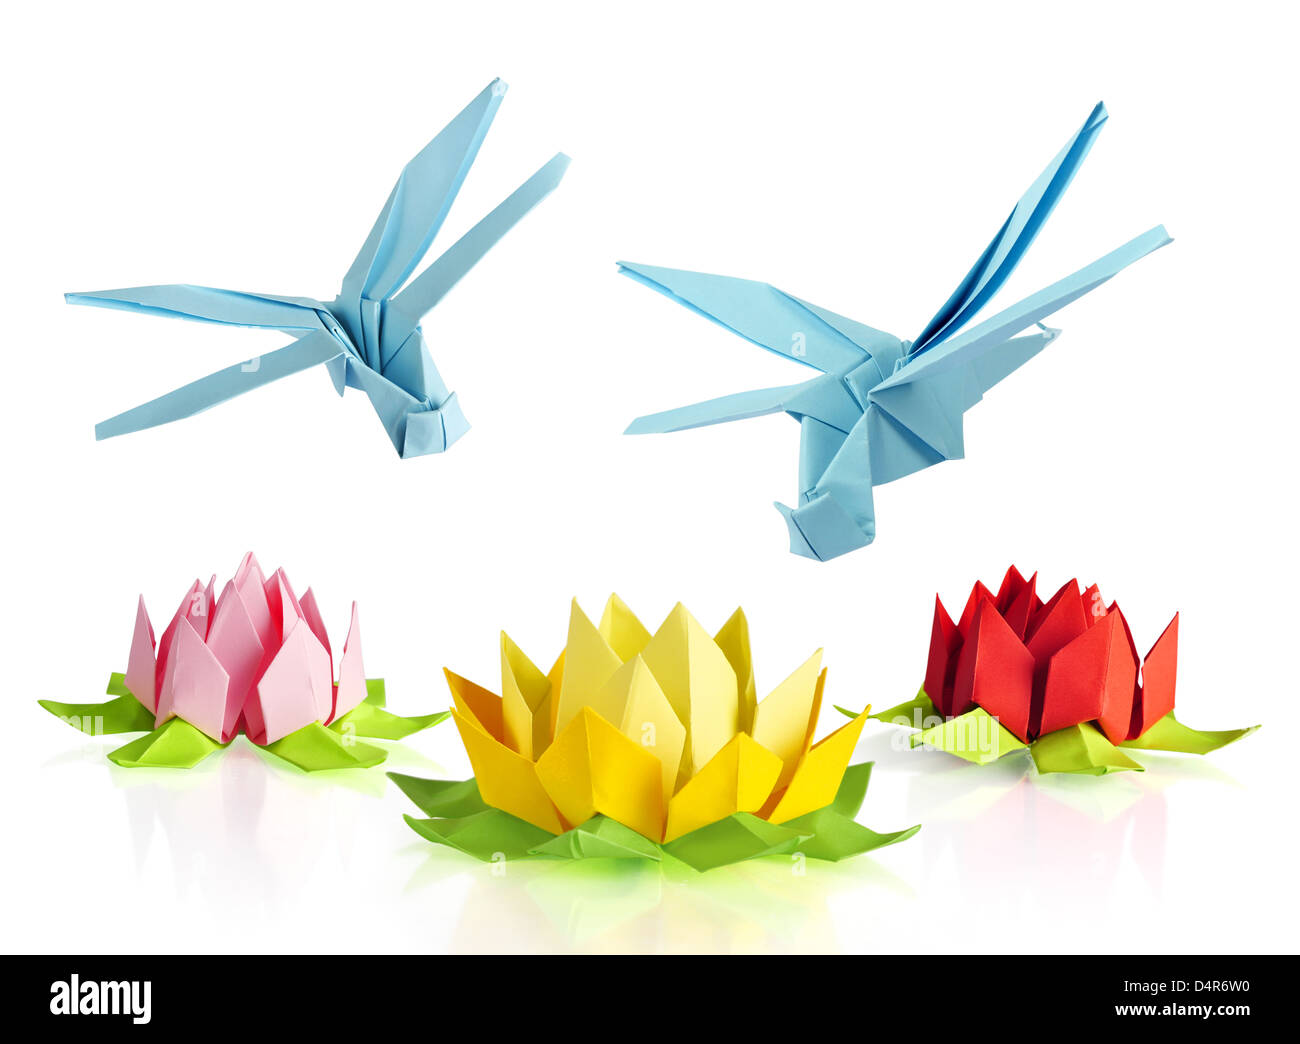 Origami Flowers Stock Photos Origami Flowers Stock Images Alamy